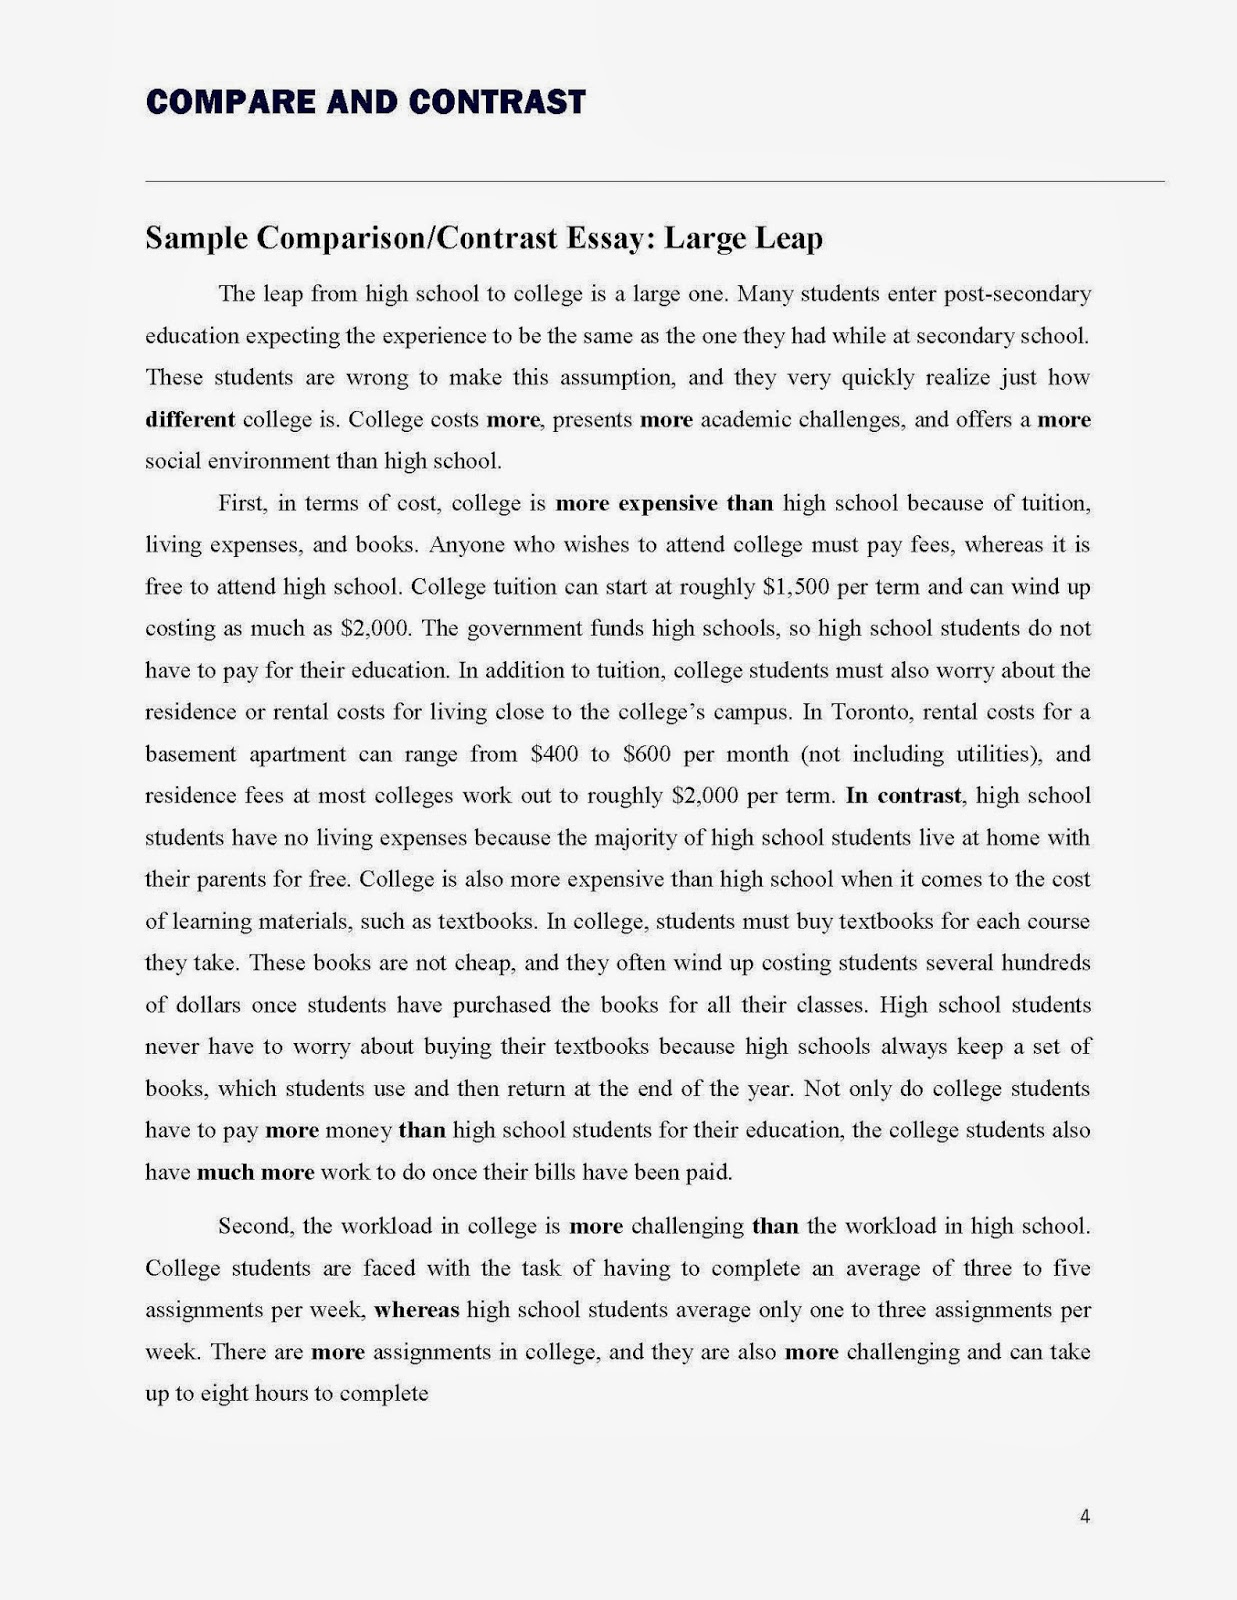 011 Compare And Contrast Essay Compareandcontrastessay Page 4h125 Frightening Topics For College Students Rubric 4th Grade Ideas 7th Full